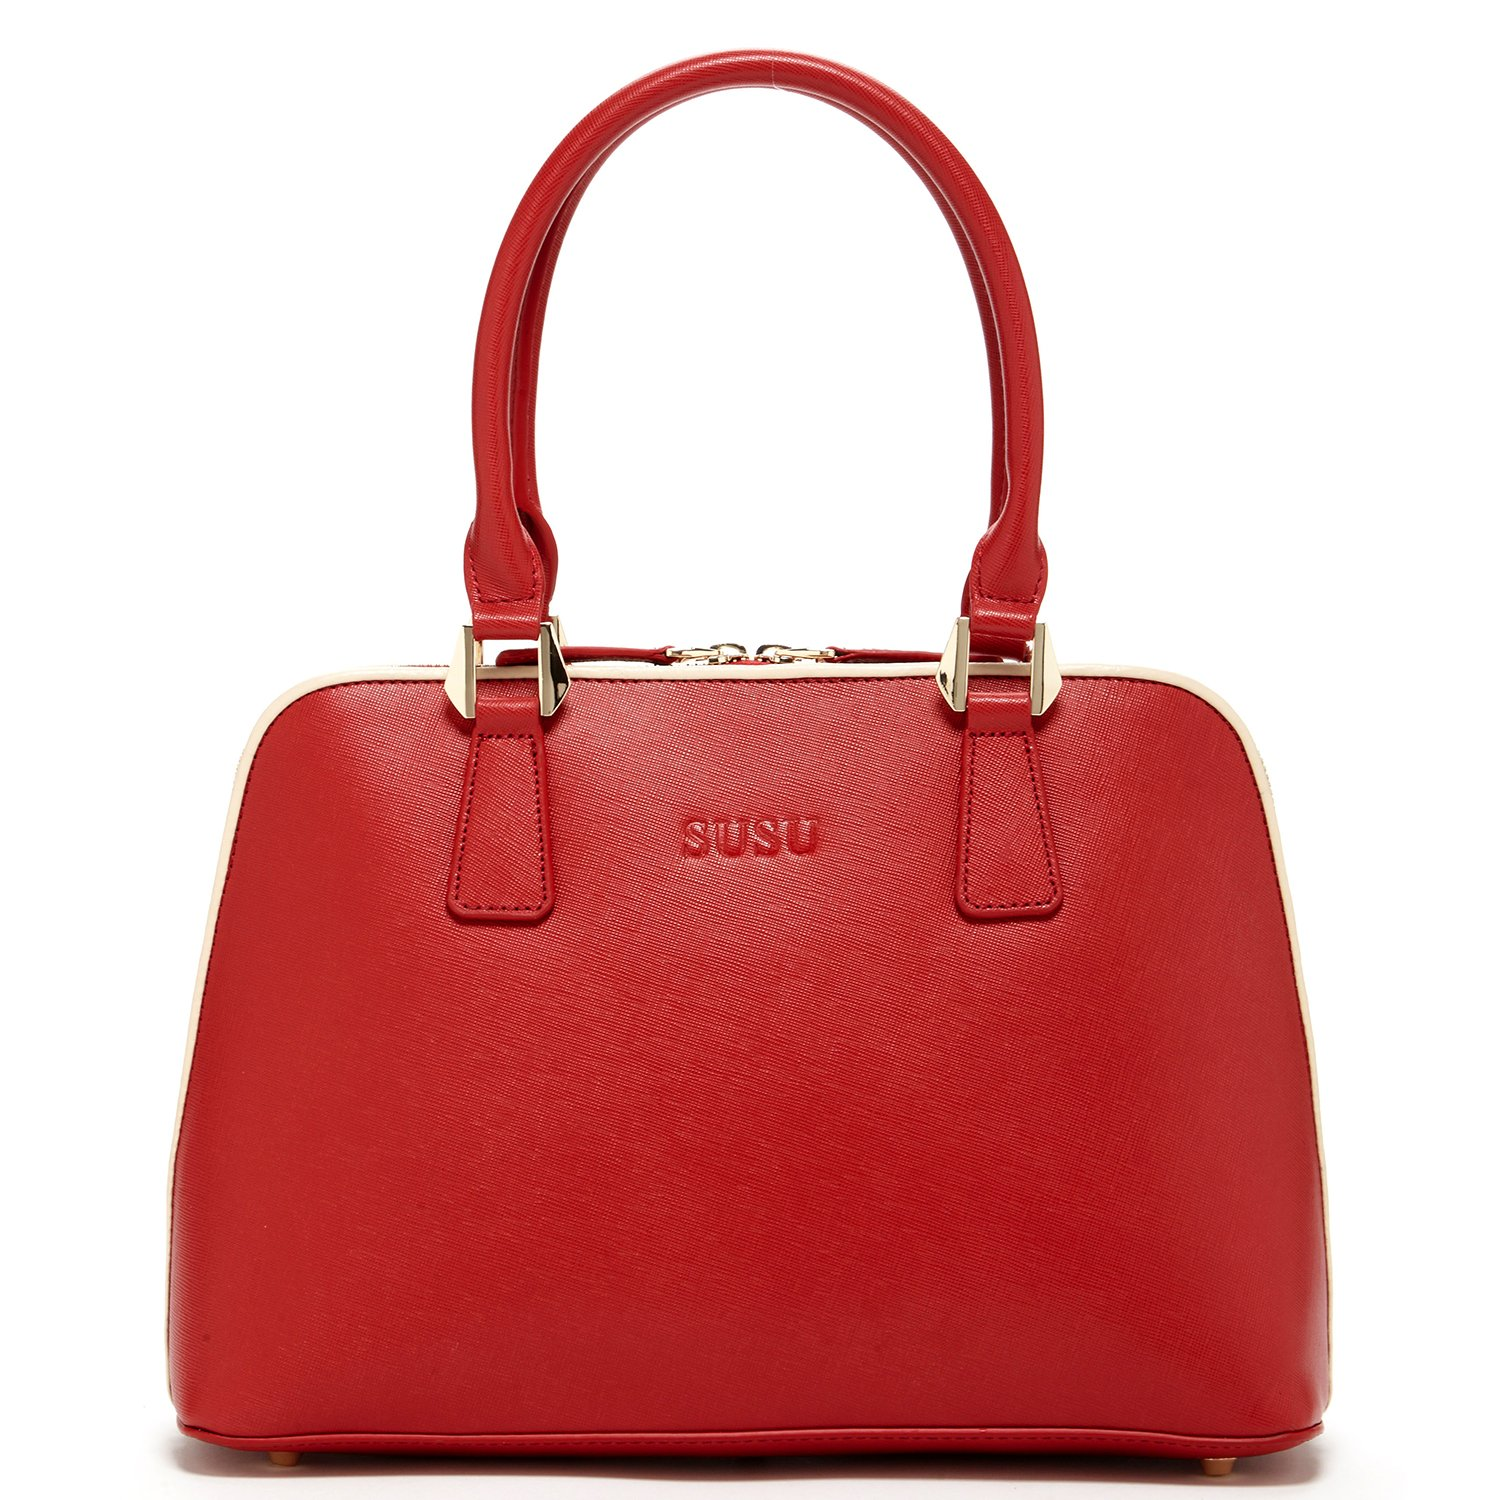 SUSU Red Satchel Handbags For Women Top Handle Saffiano Genuine Leather Purse Womens Designer Bags Classic Handbag with Long Crossbody Strap Dome Shape Bag Elegant Shoulder Purses For Women's Gift